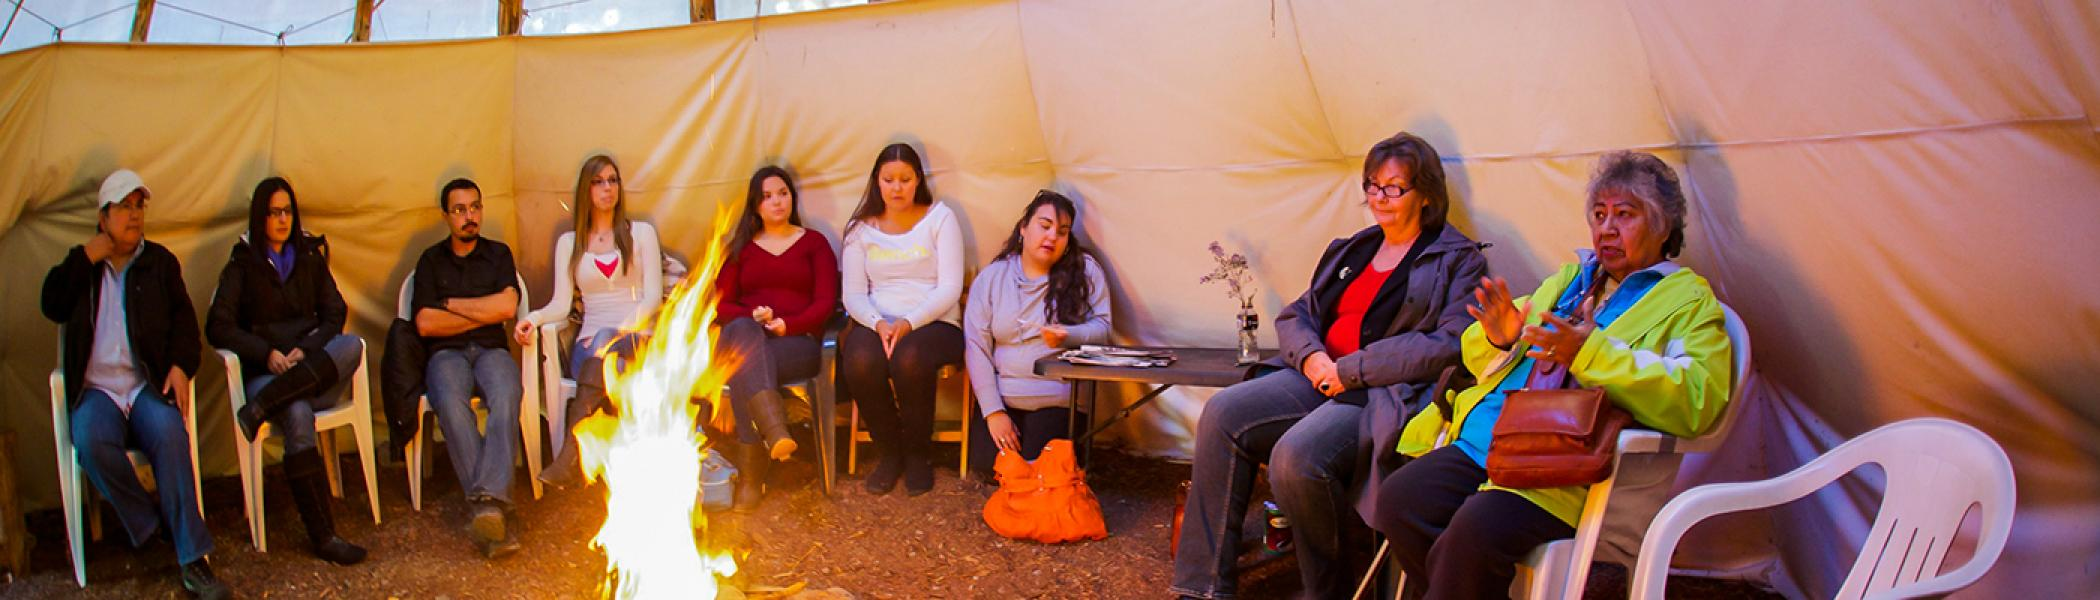 Shirley Williams sitting in a tipi in front of a fire teaching as students listen in sitting around the circle